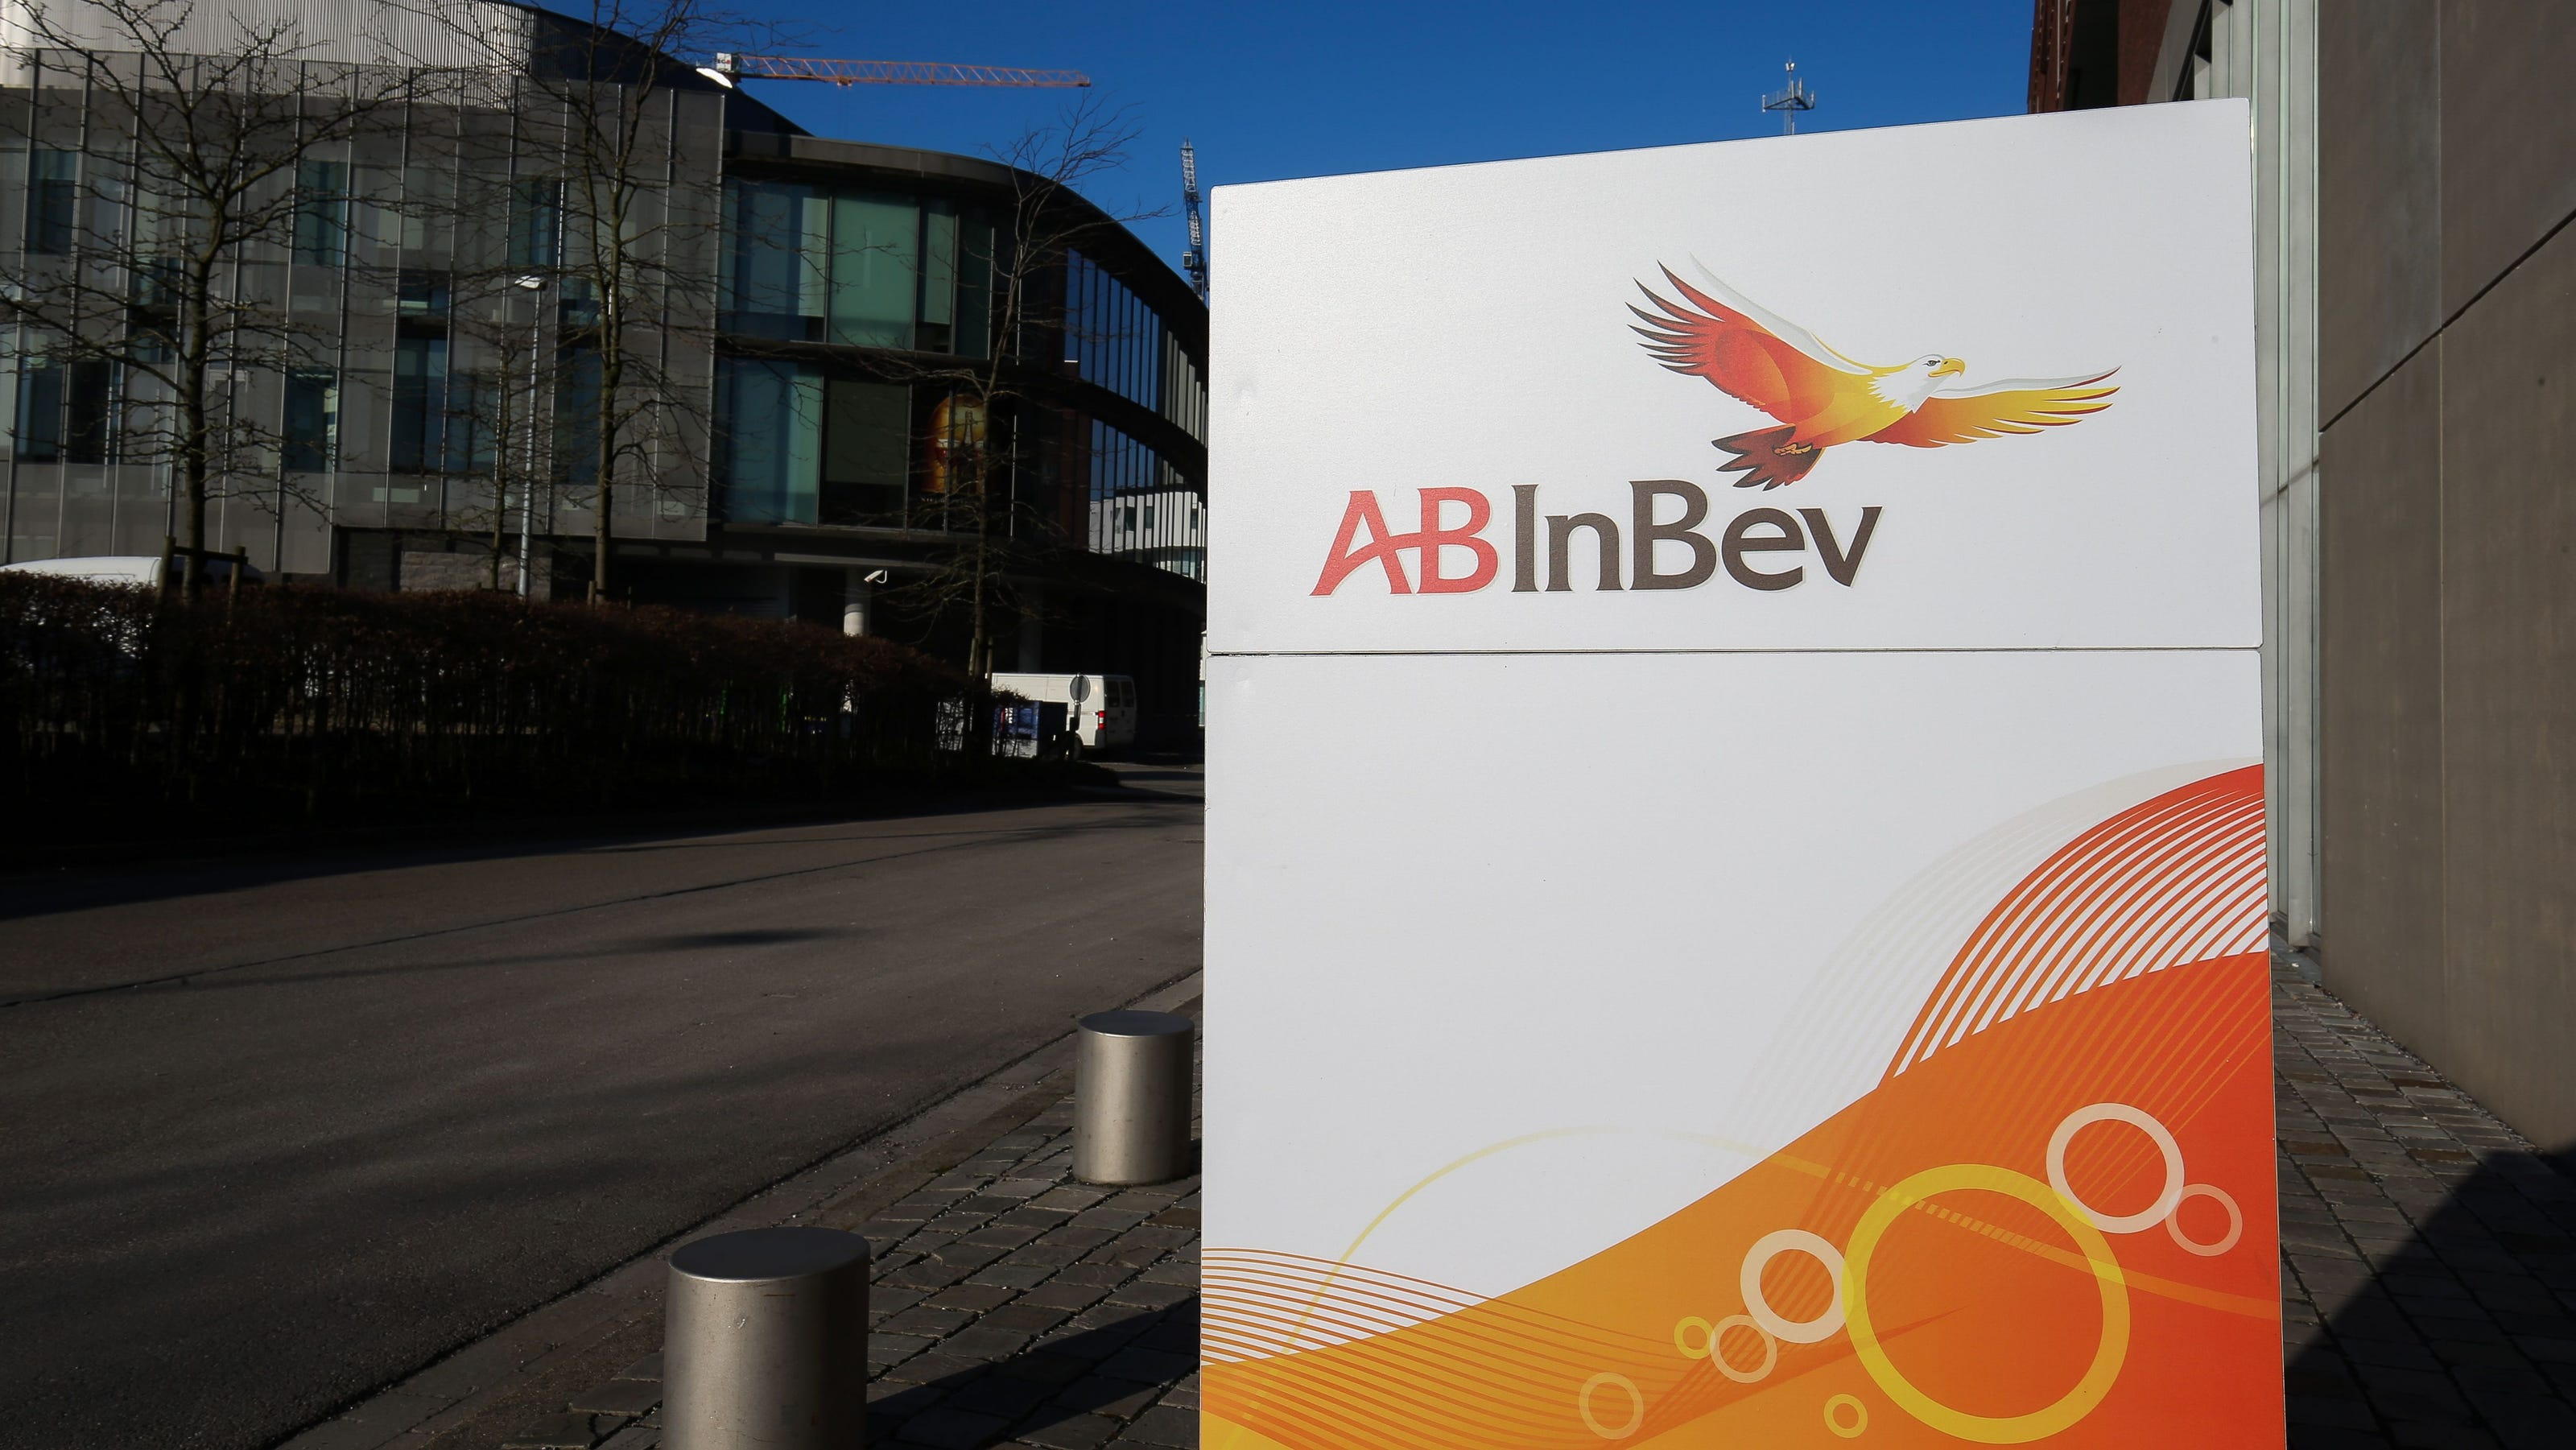 Anheuser-Busch says it will give away free beer if 70% of U.S. adults get at least partially vaccinated by July 4